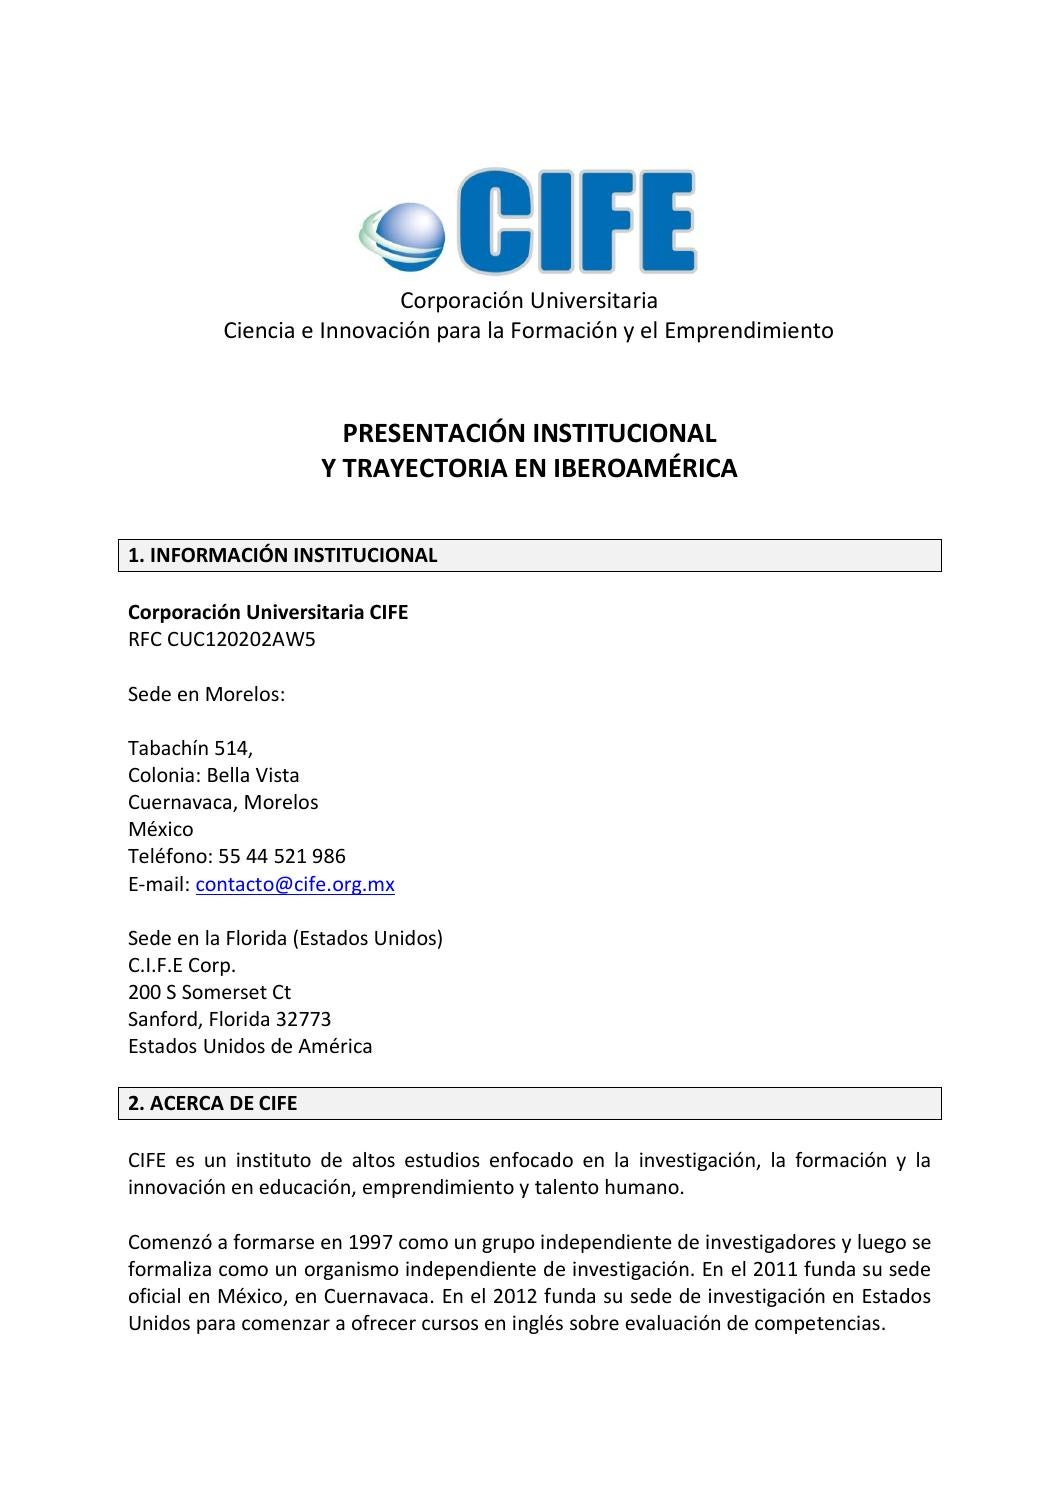 Curriculum vitae cife by CIFE, Centro Universitario - issuu